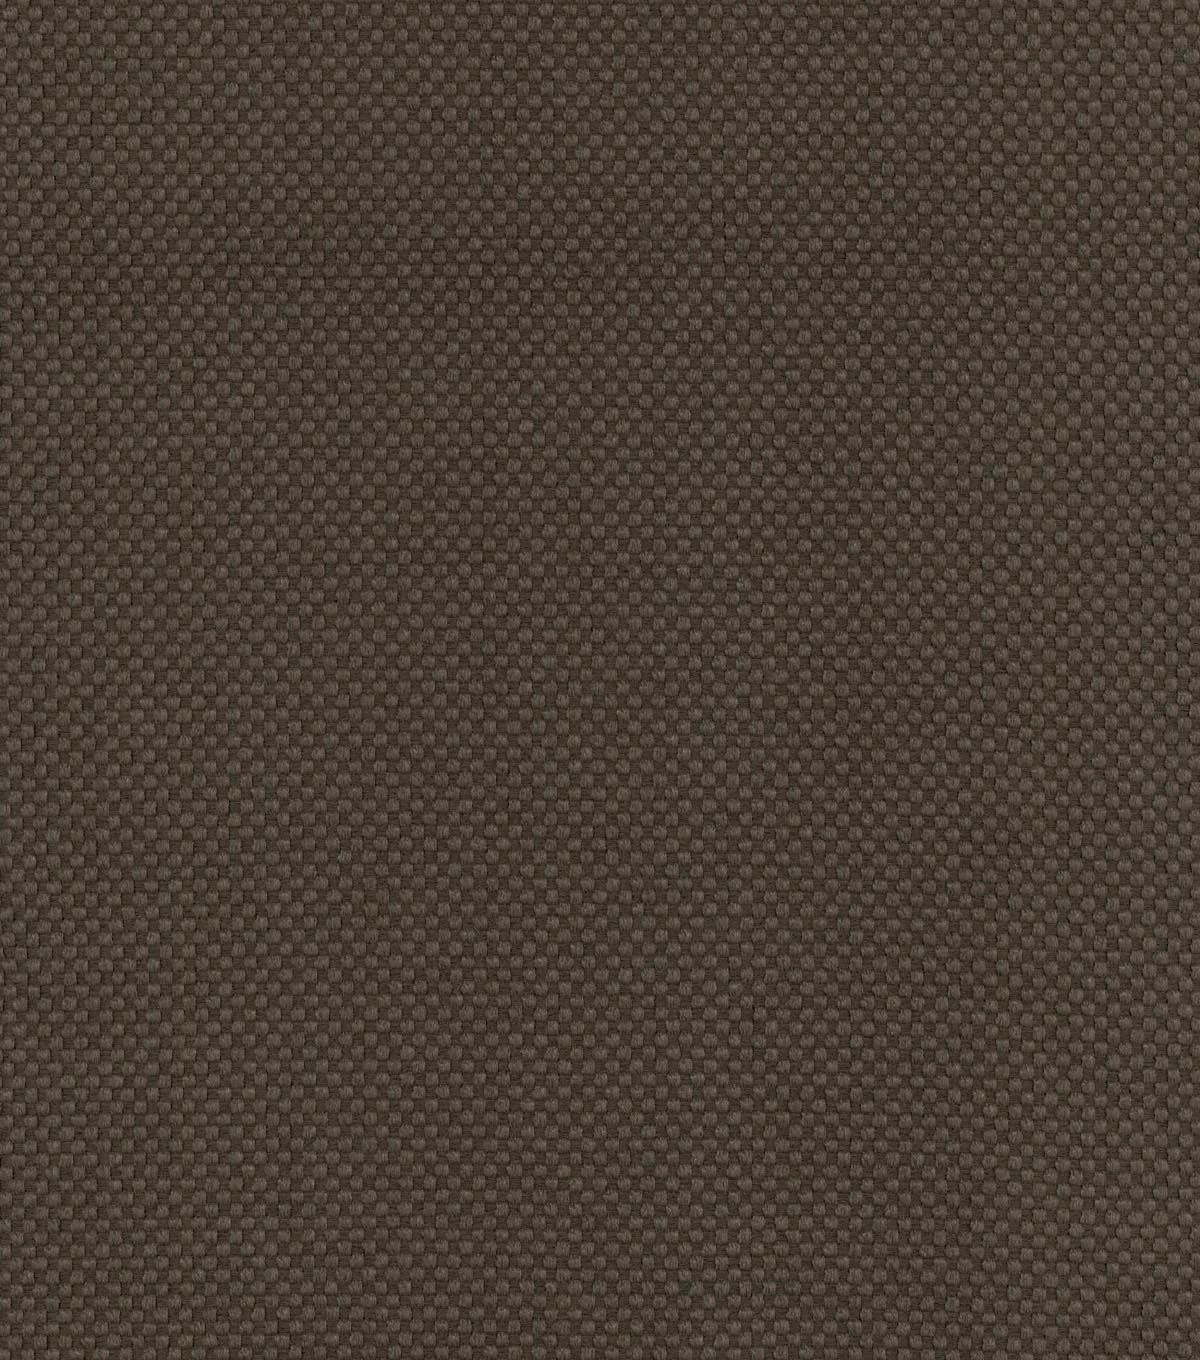 Home Decor 8\u0022x8\u0022 Swatch Fabric-Waverly SoHo Solid Earth